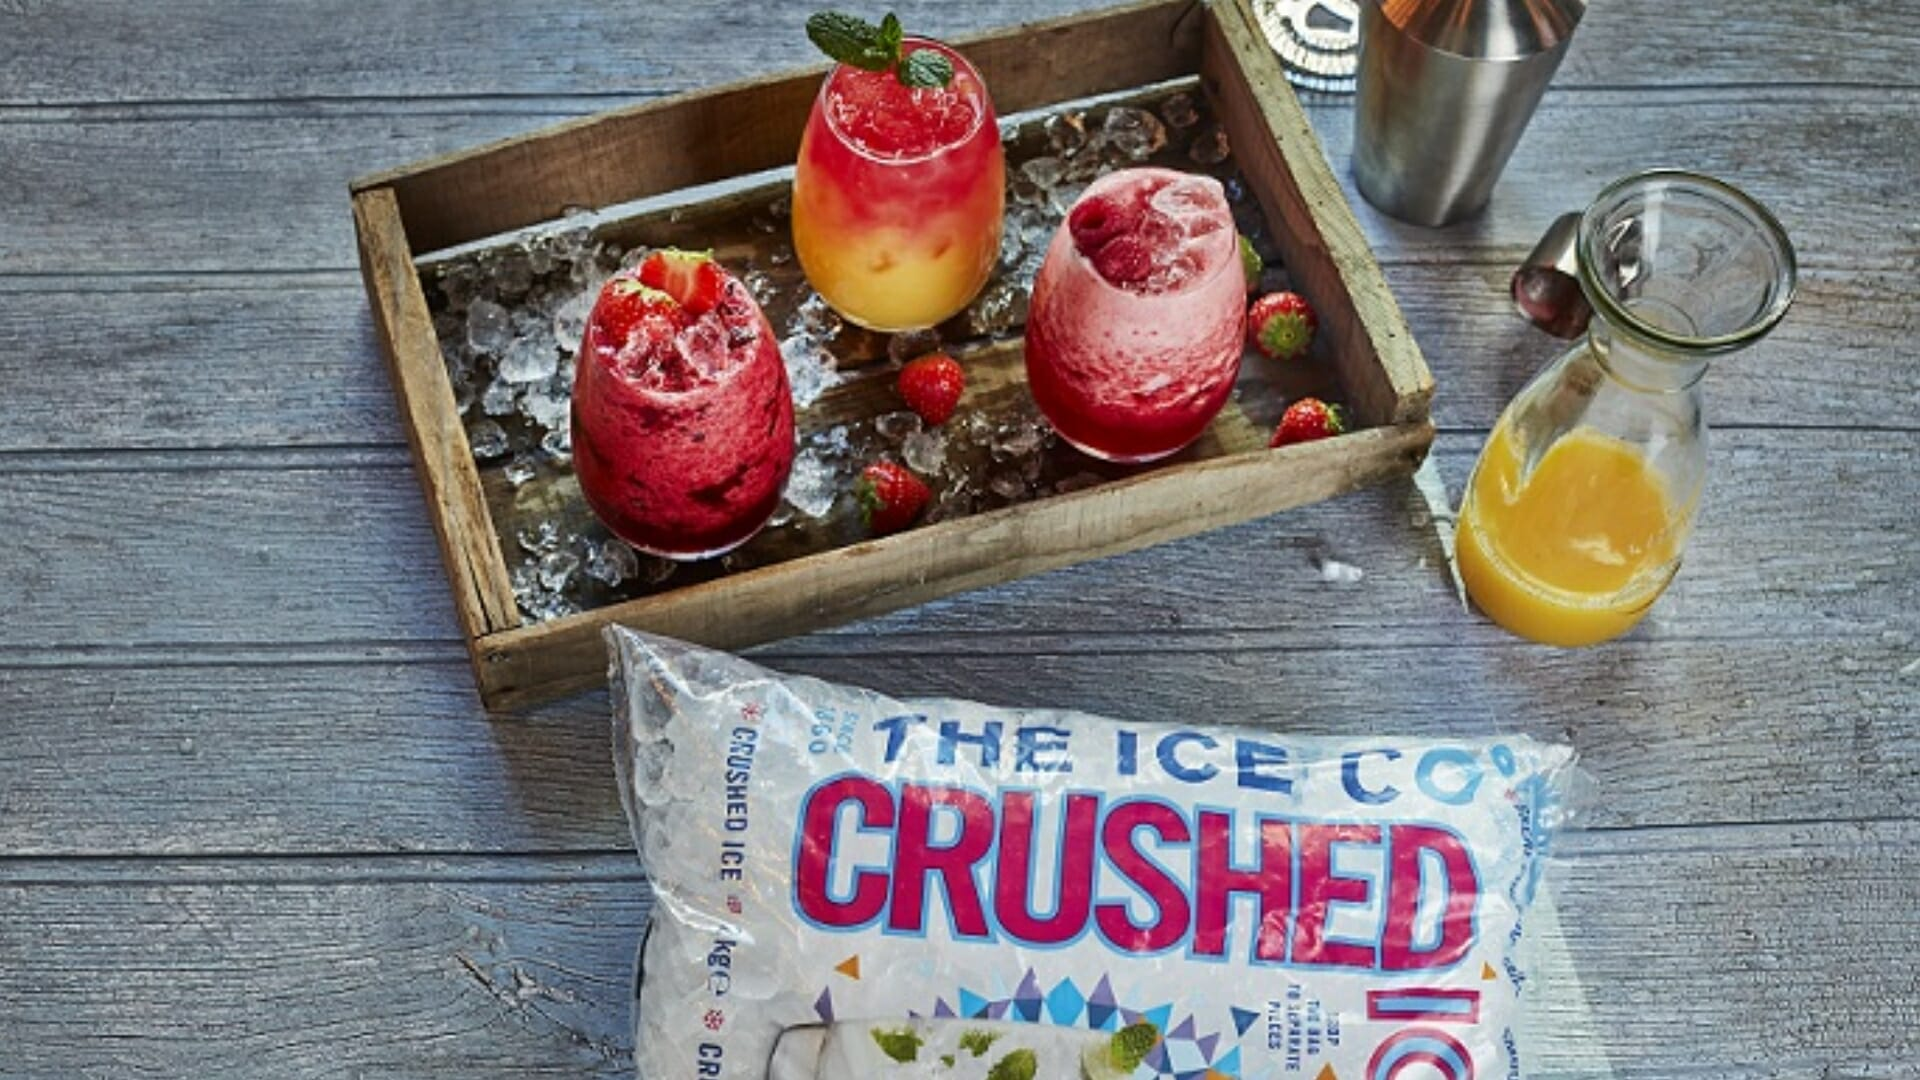 Crushed-ice-and-smoothies